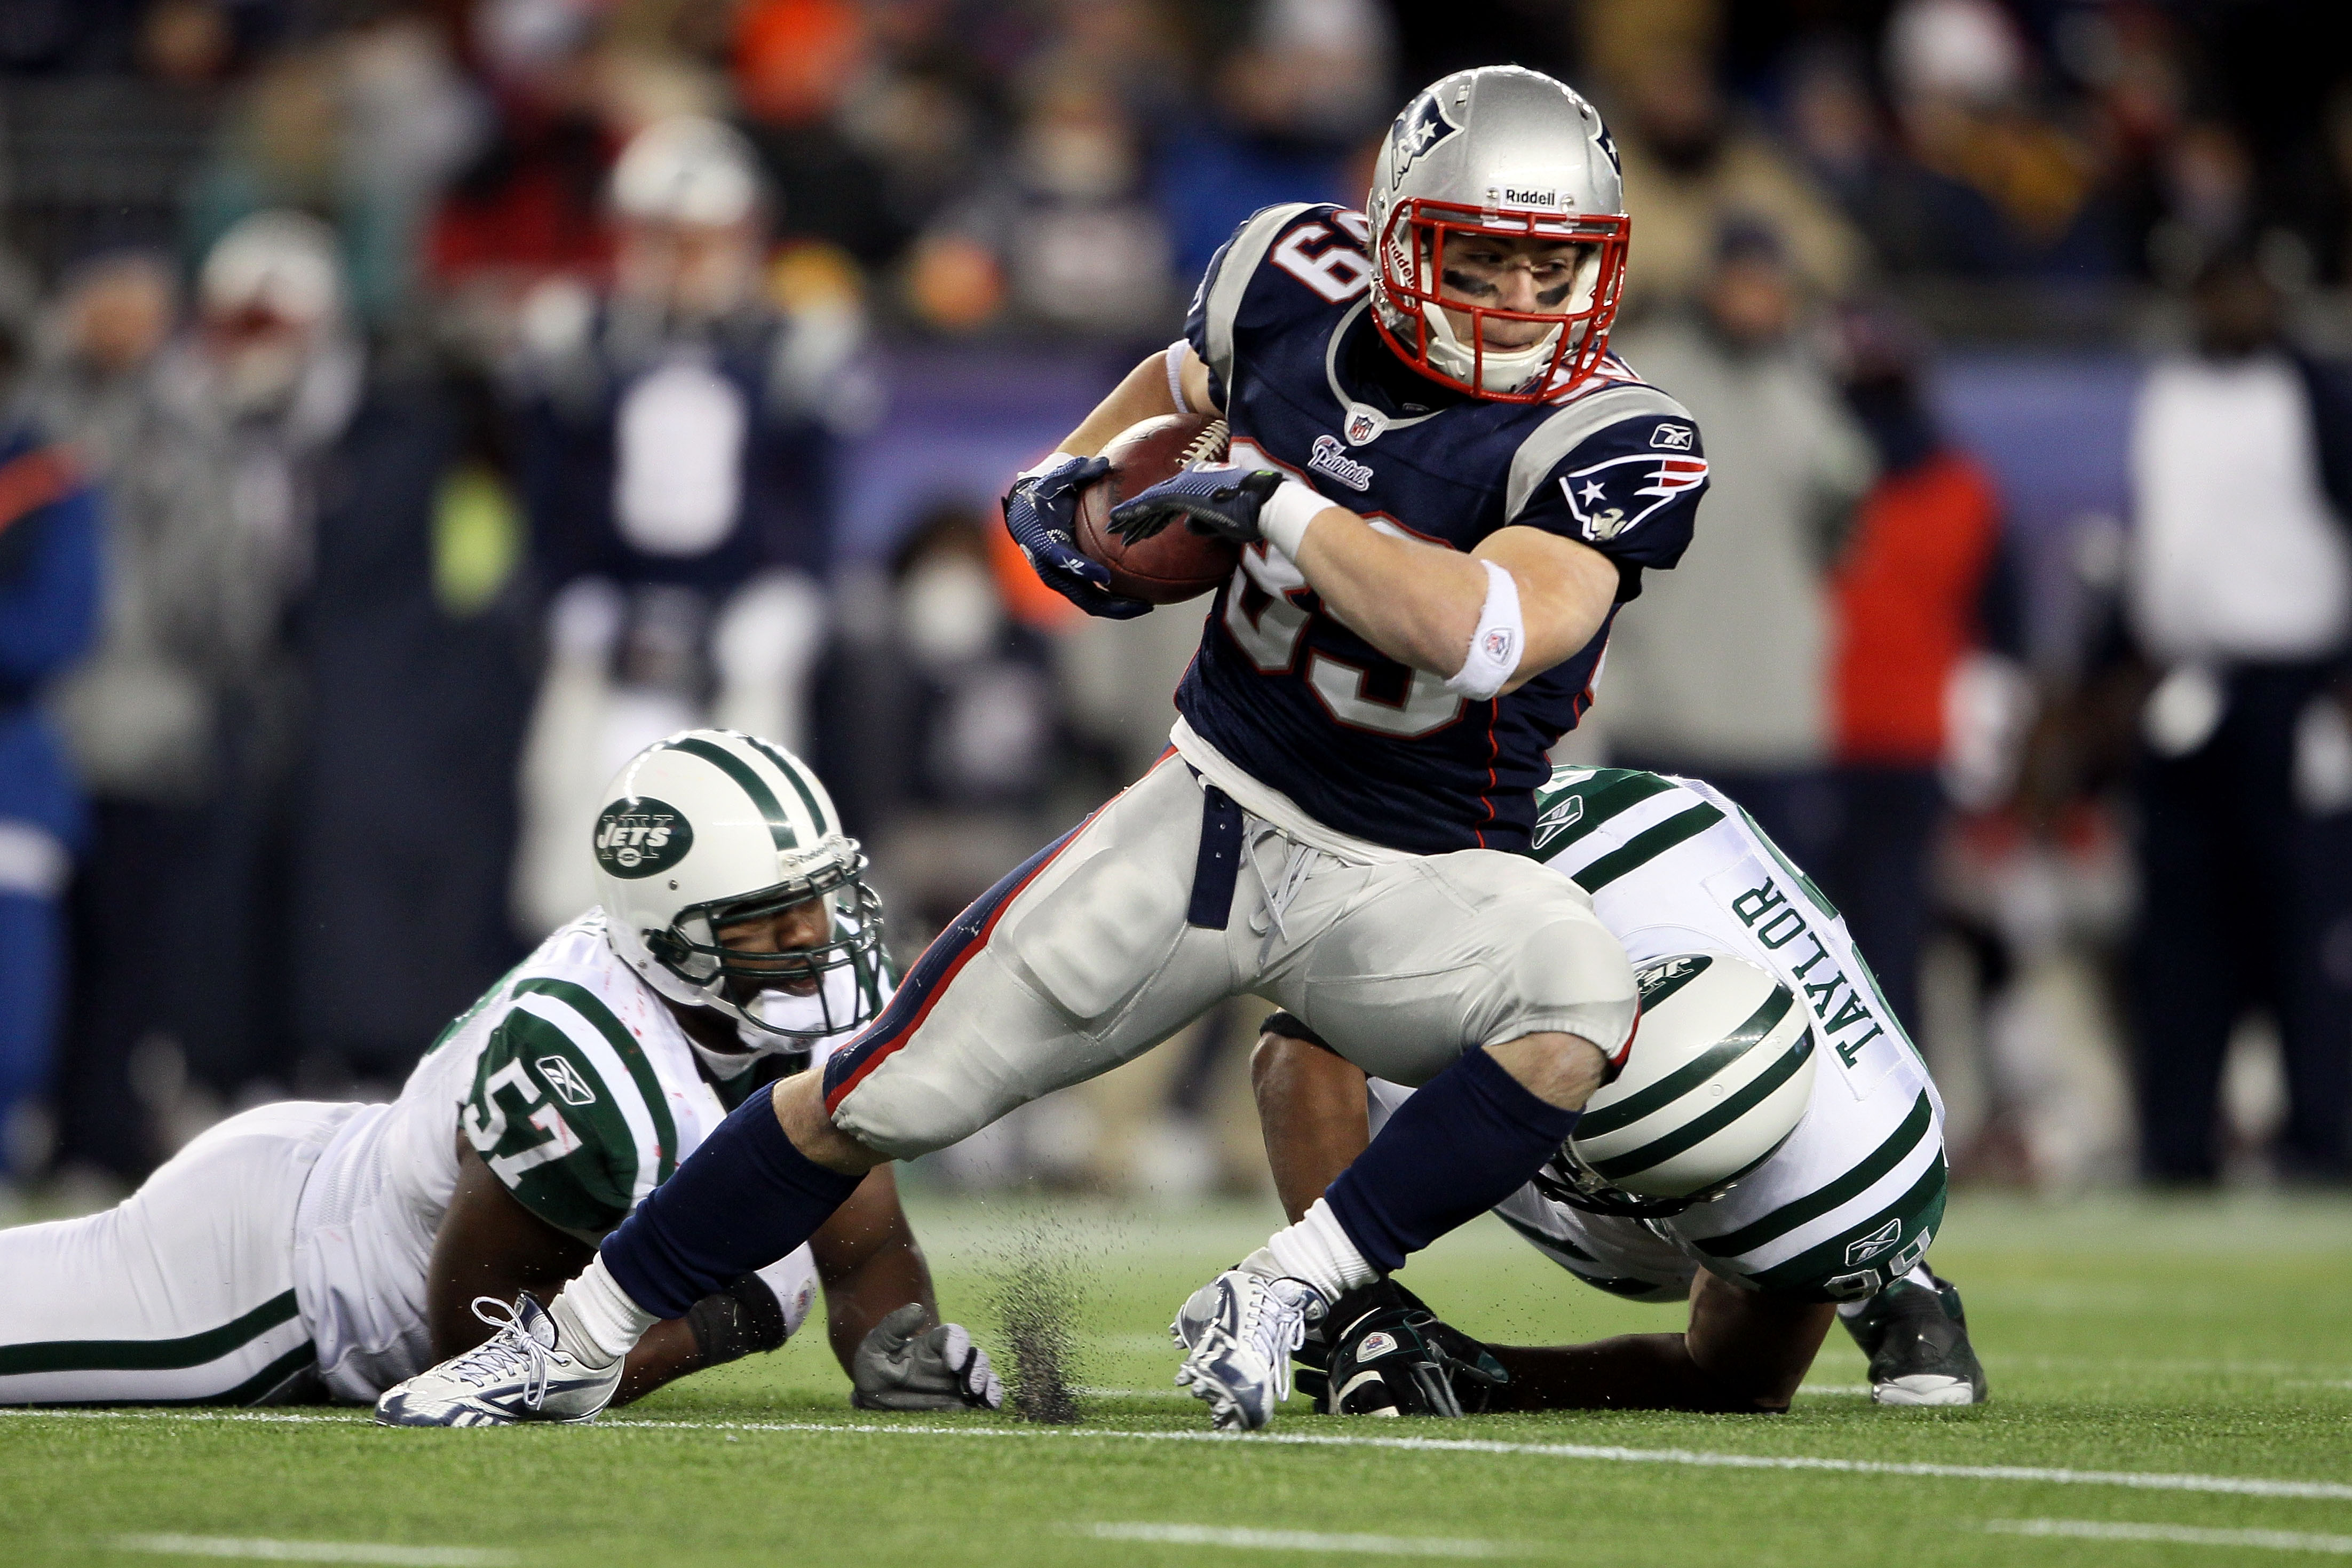 FOXBORO, MA - DECEMBER 06:  Danny Woodhead #39 of the New England Patriots runs with the ball against Bart Scott #57 and Jason Taylor #99 of the New York Jets at Gillette Stadium on December 6, 2010 in Foxboro, Massachusetts.  (Photo by Elsa/Getty Images)